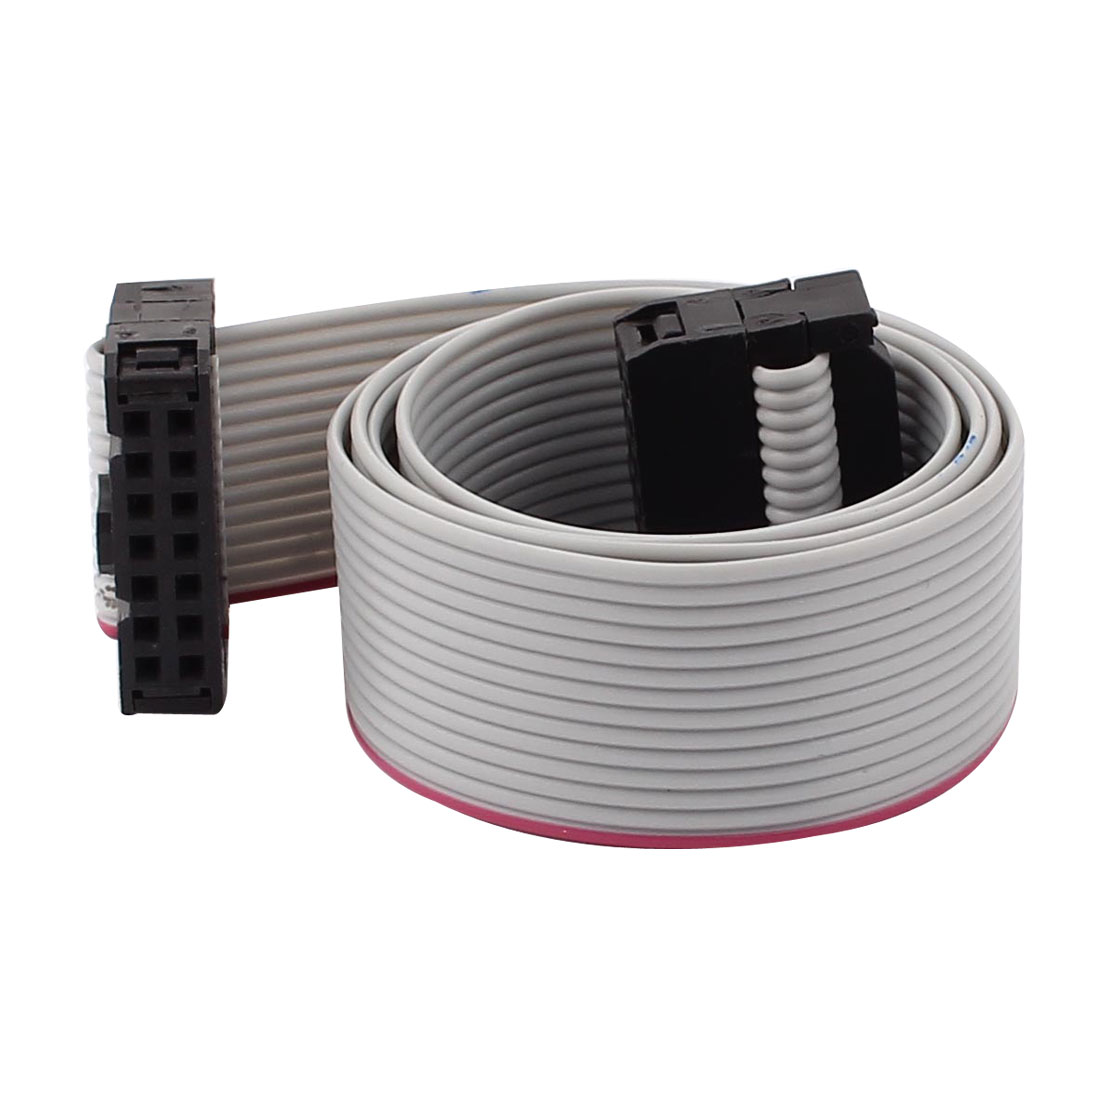 48cm 14-Pin 14 Way 2.54mm Pitch Female to Female IDE Extension Flat Ribbon Cable